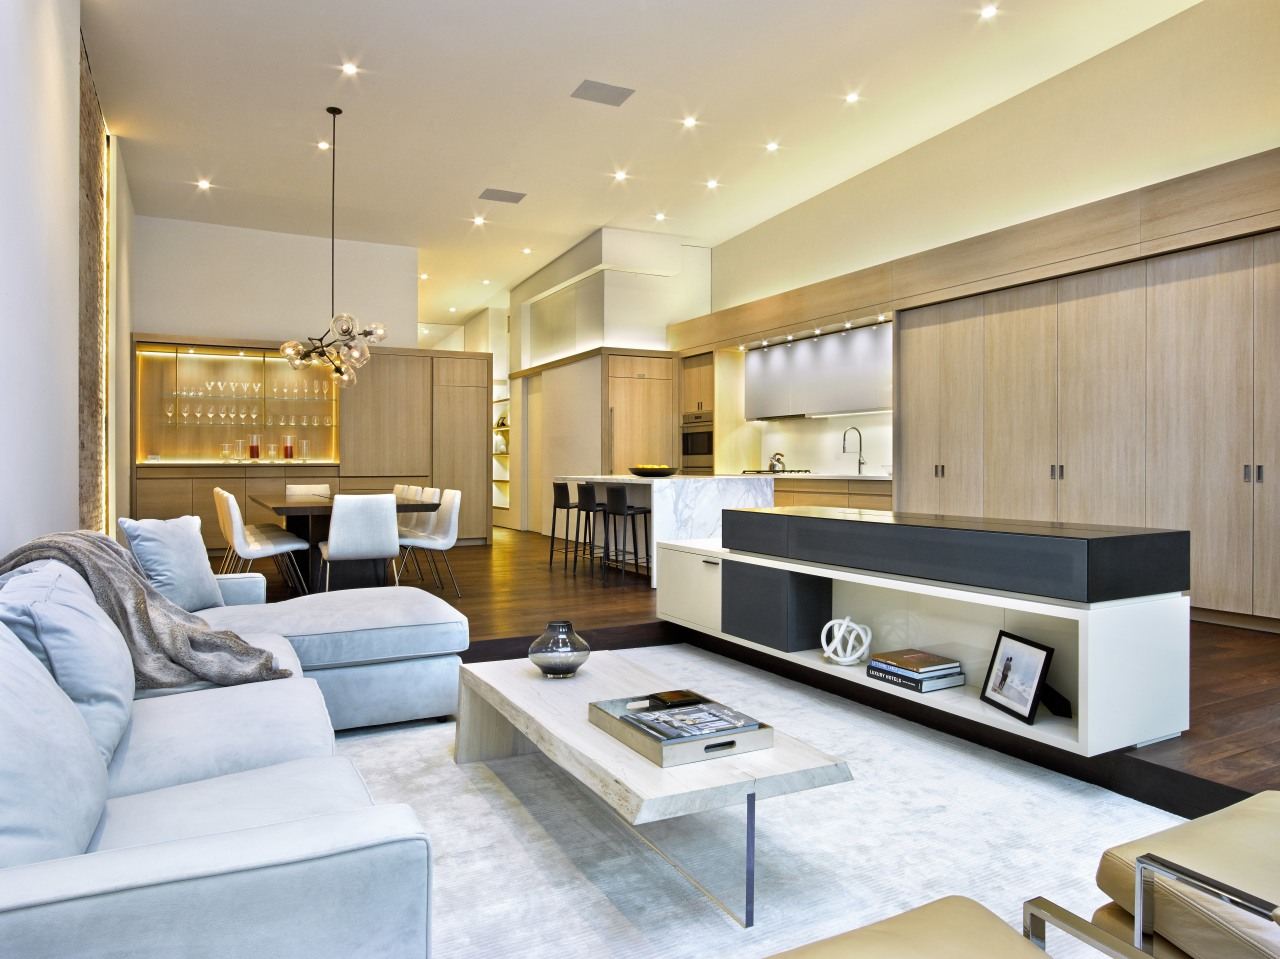 Integrated living spaces fulfil the client's desire for ceiling, interior design, living room, real estate, orange, white